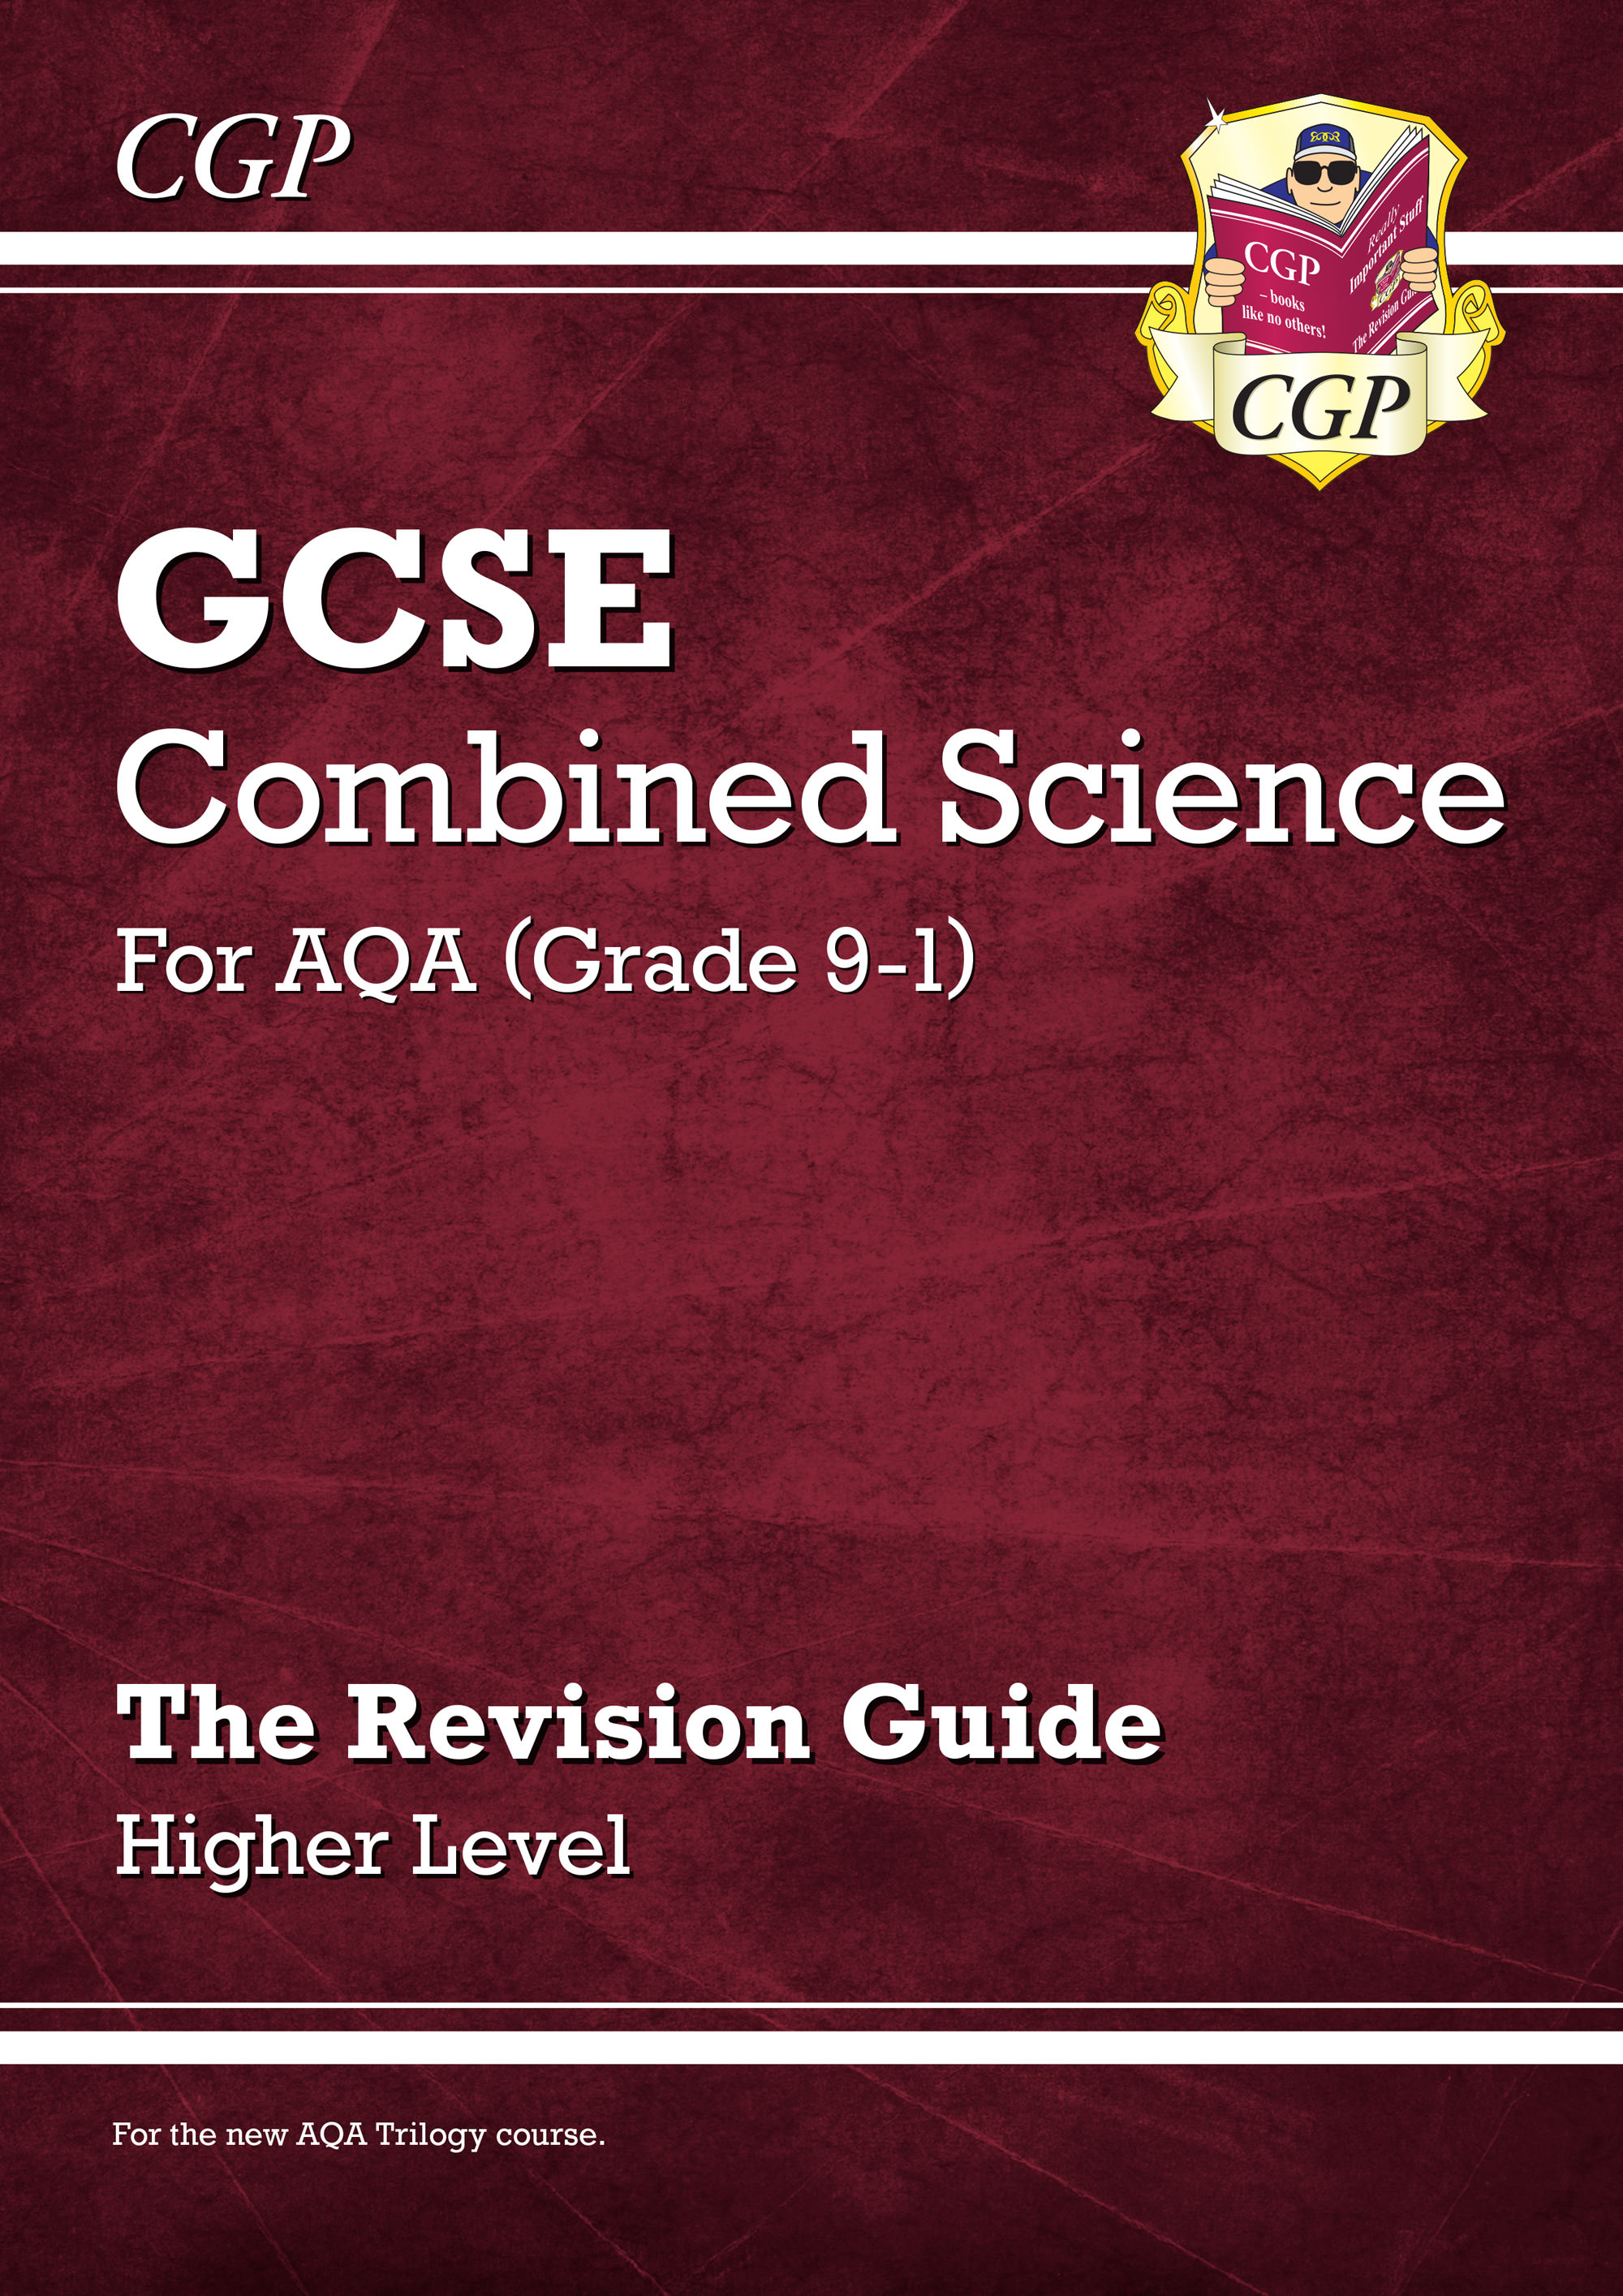 SAHR45D - Grade 9-1 GCSE Combined Science: AQA Revision Guide - Higher (Online Edition)